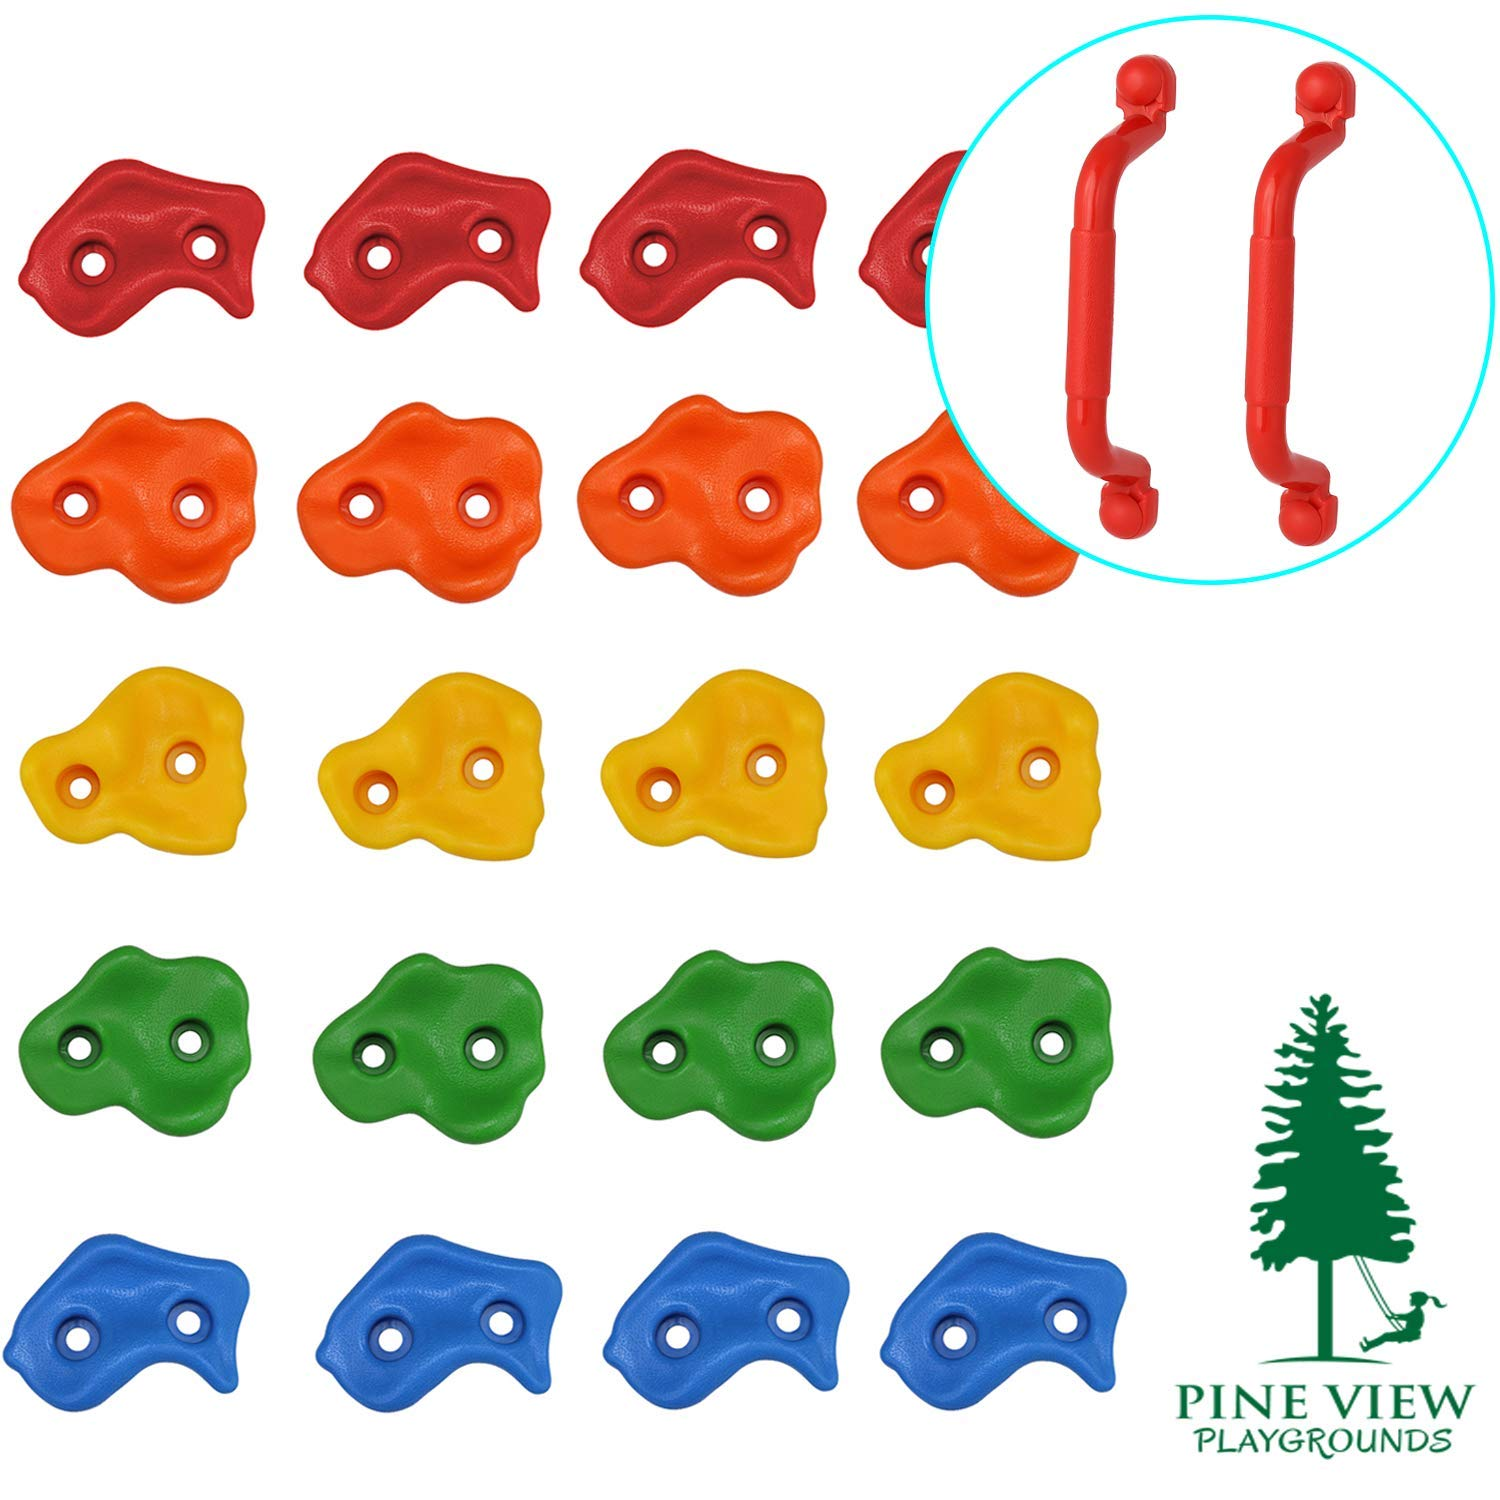 Pine View Playgrounds Kids Premium Rock Climbing Holds with Safety Handles | Extended 2 Inch Mounting Hardware for Childrens Playground Rock Wall | Playset Installation Guide Included by Pine View Playgrounds